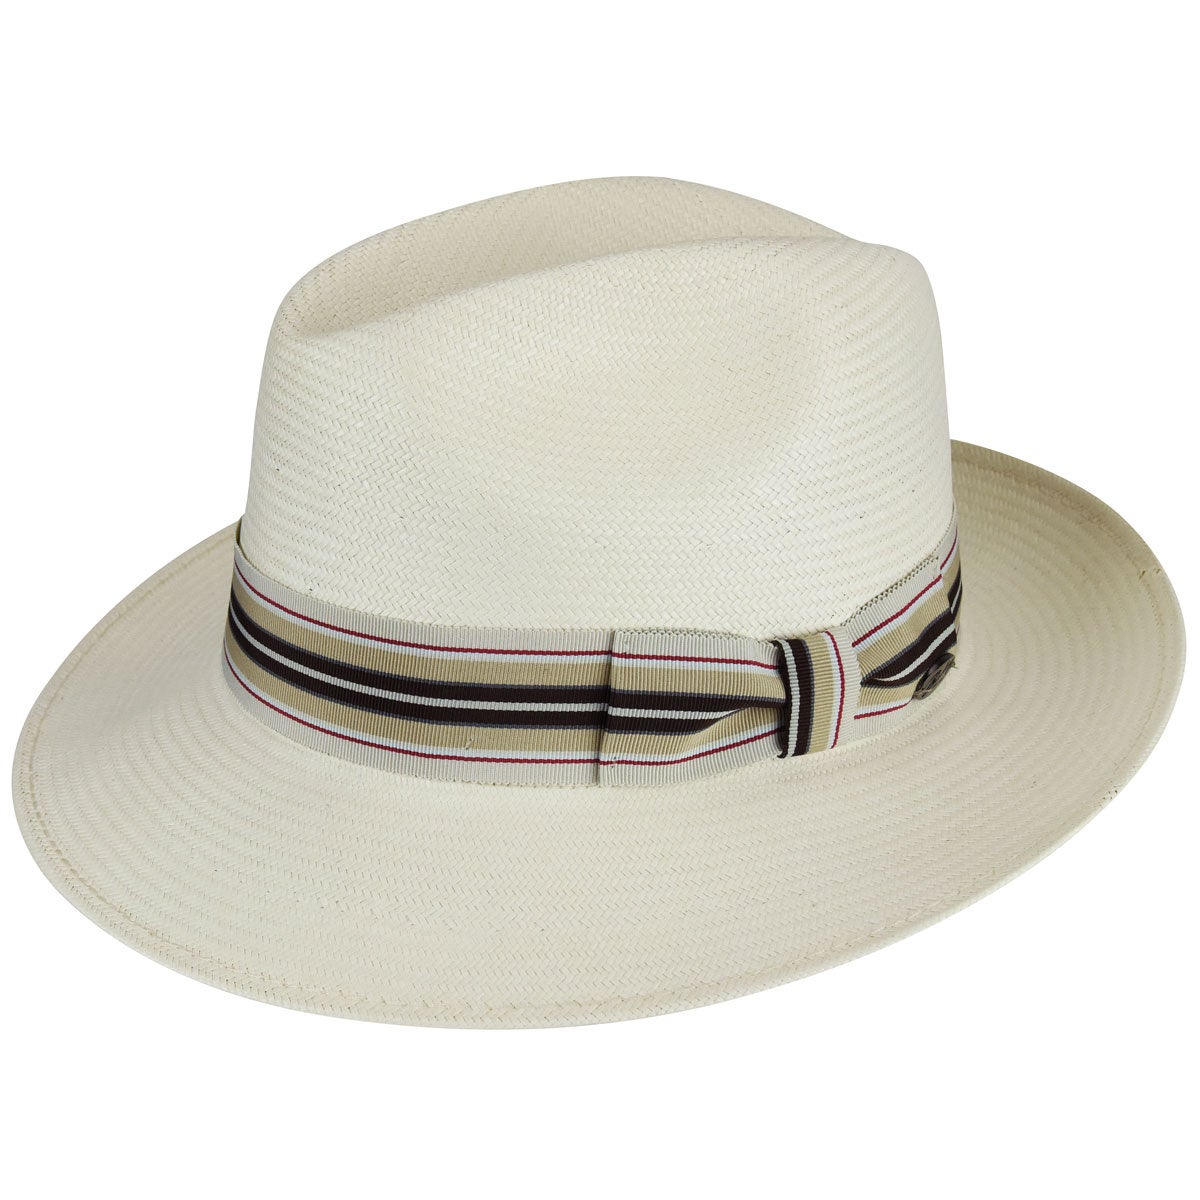 Rockabilly Men's Clothing Creel LiteStrawreg Fedora $115.00 AT vintagedancer.com